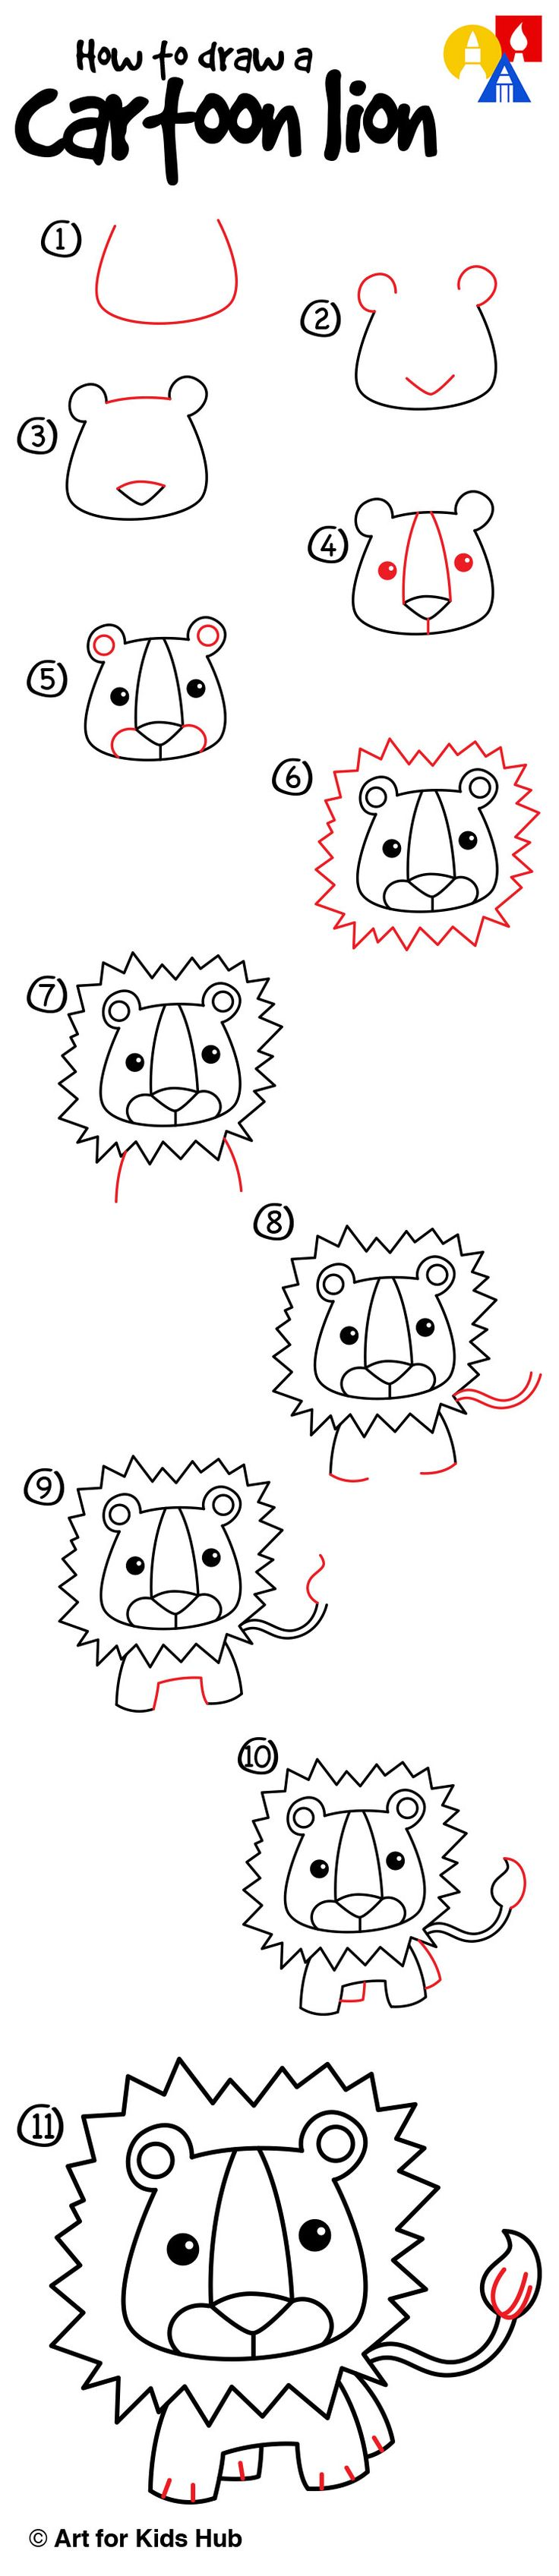 Learn how to draw a cartoon lion!                                                                                                                                                                                 More